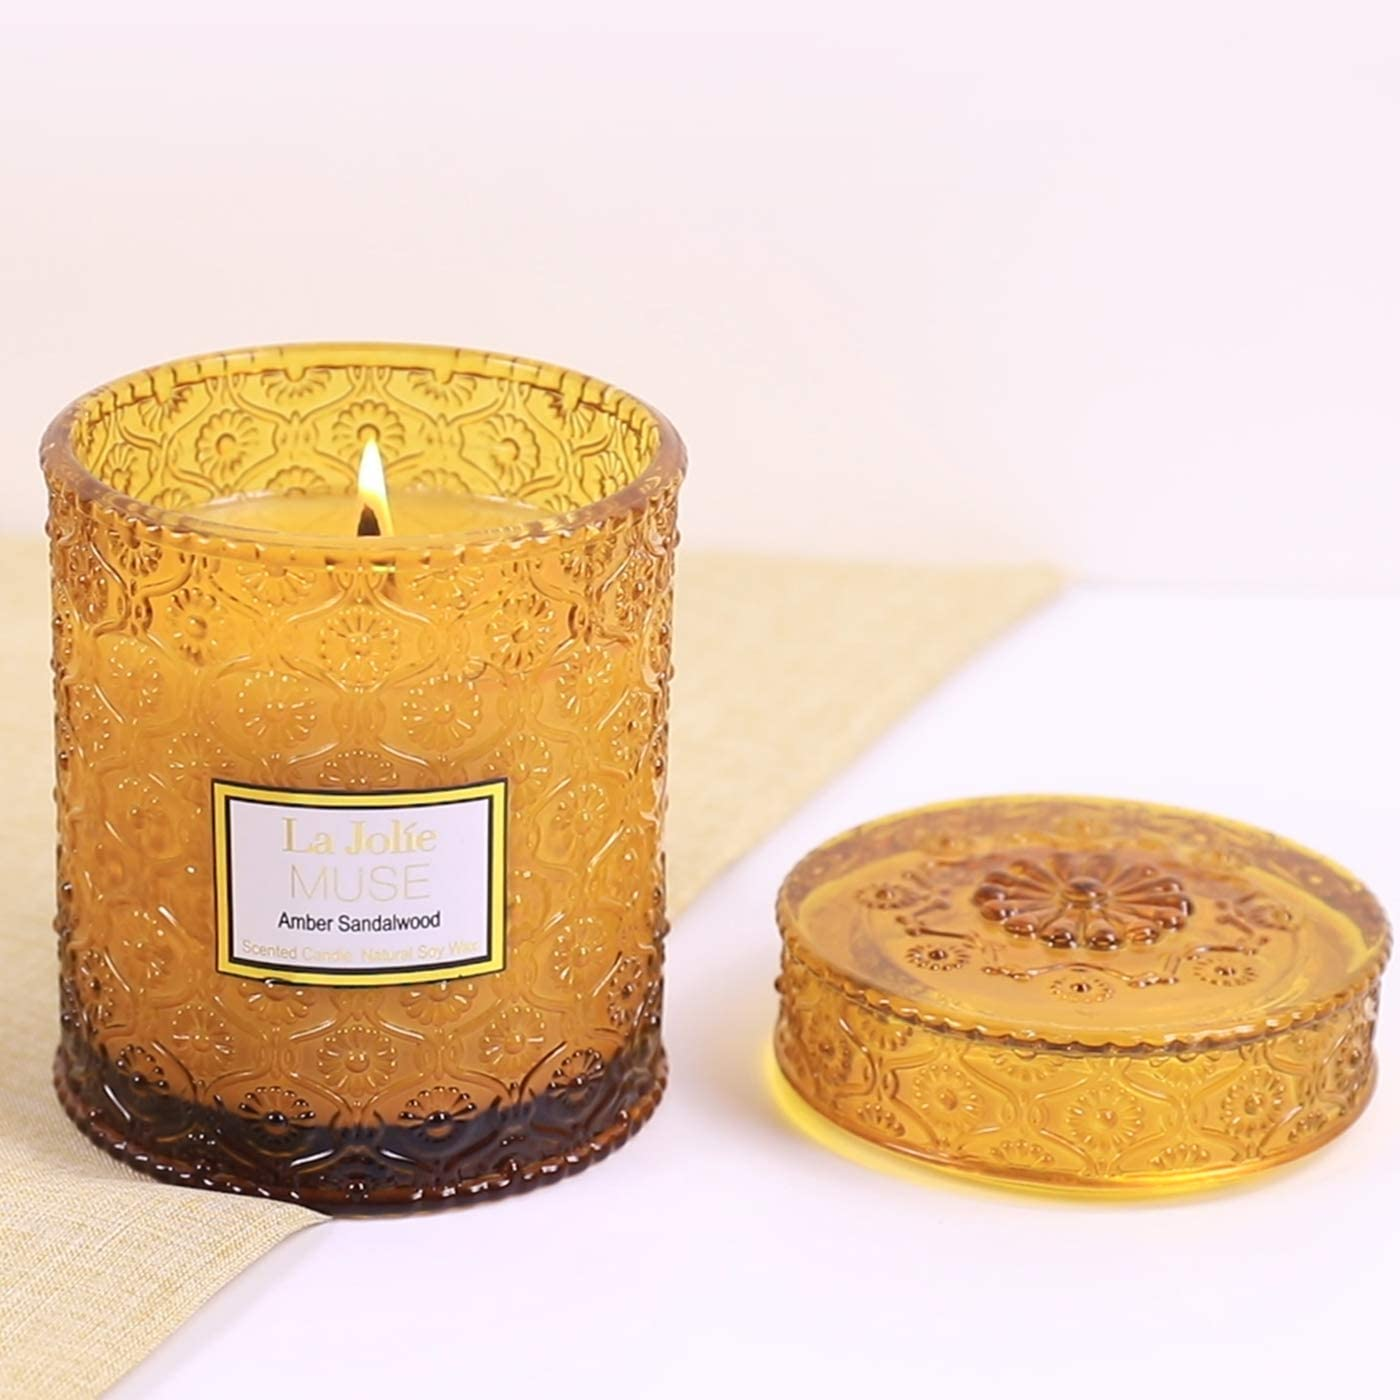 LA JOLIE MUSE Wood Wick 19.4oz Sandalwood Scented Candles Soy Wax Candle Large Glass Jar 90 Hours